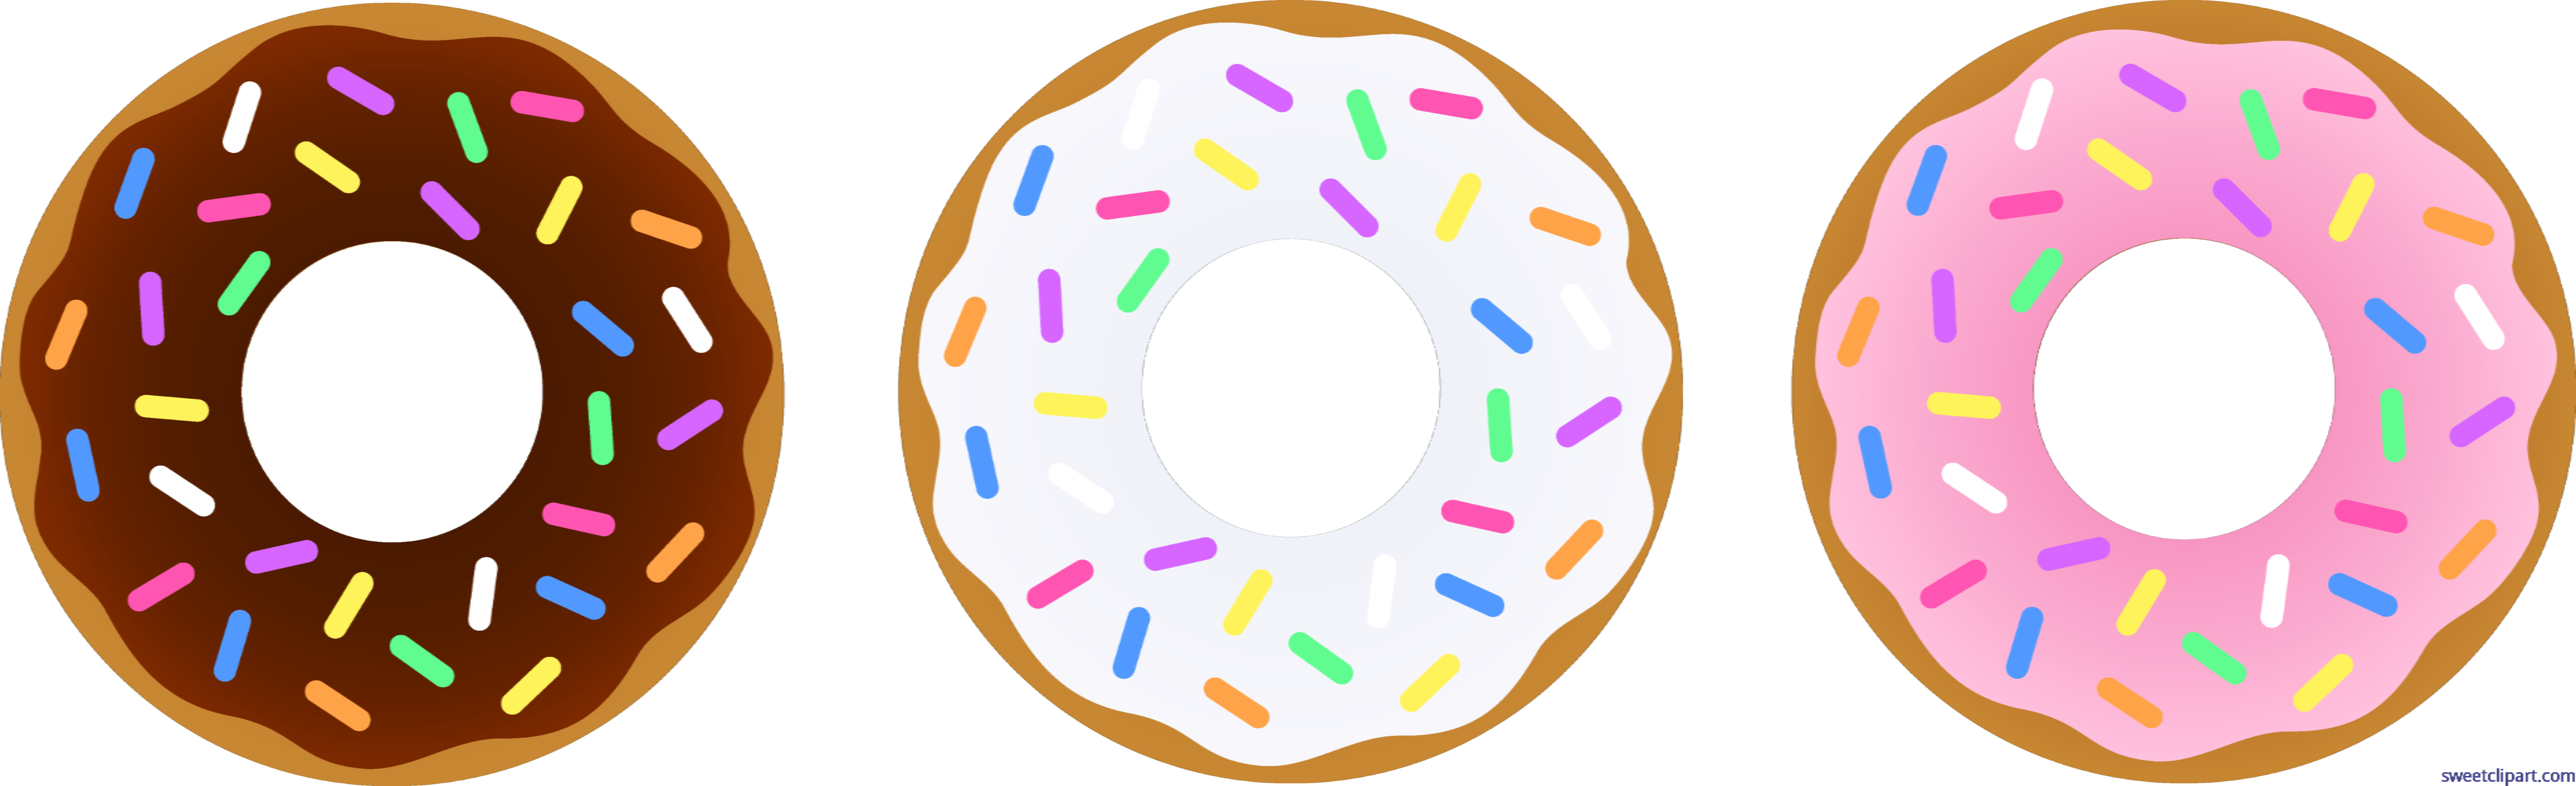 Basketball and donuts clipart clip free stock Donut Clipart | jokingart.com clip free stock